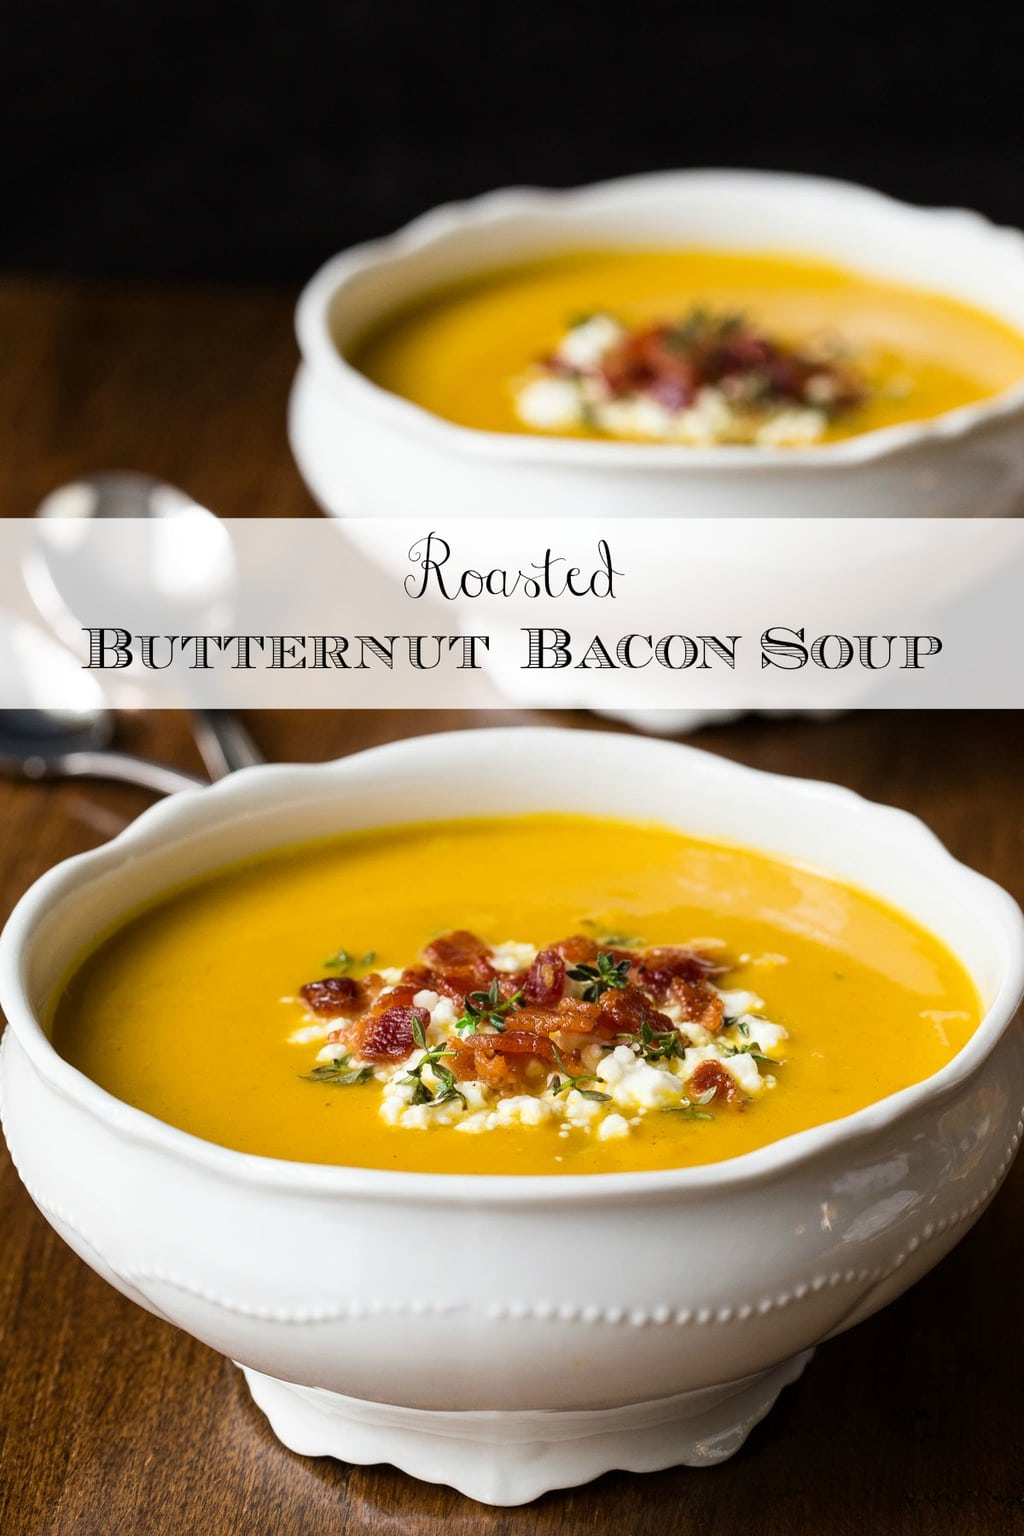 Healthy, elegant and full of flavor, this delicious Roasted Butternut Bacon Soup is perfect for lunches, casual dinners, and meals on the run! It also makes a wonderful appetizer soup! #butternut soup, #butternutsquashsoup, #easyfallsoup, #squash soup